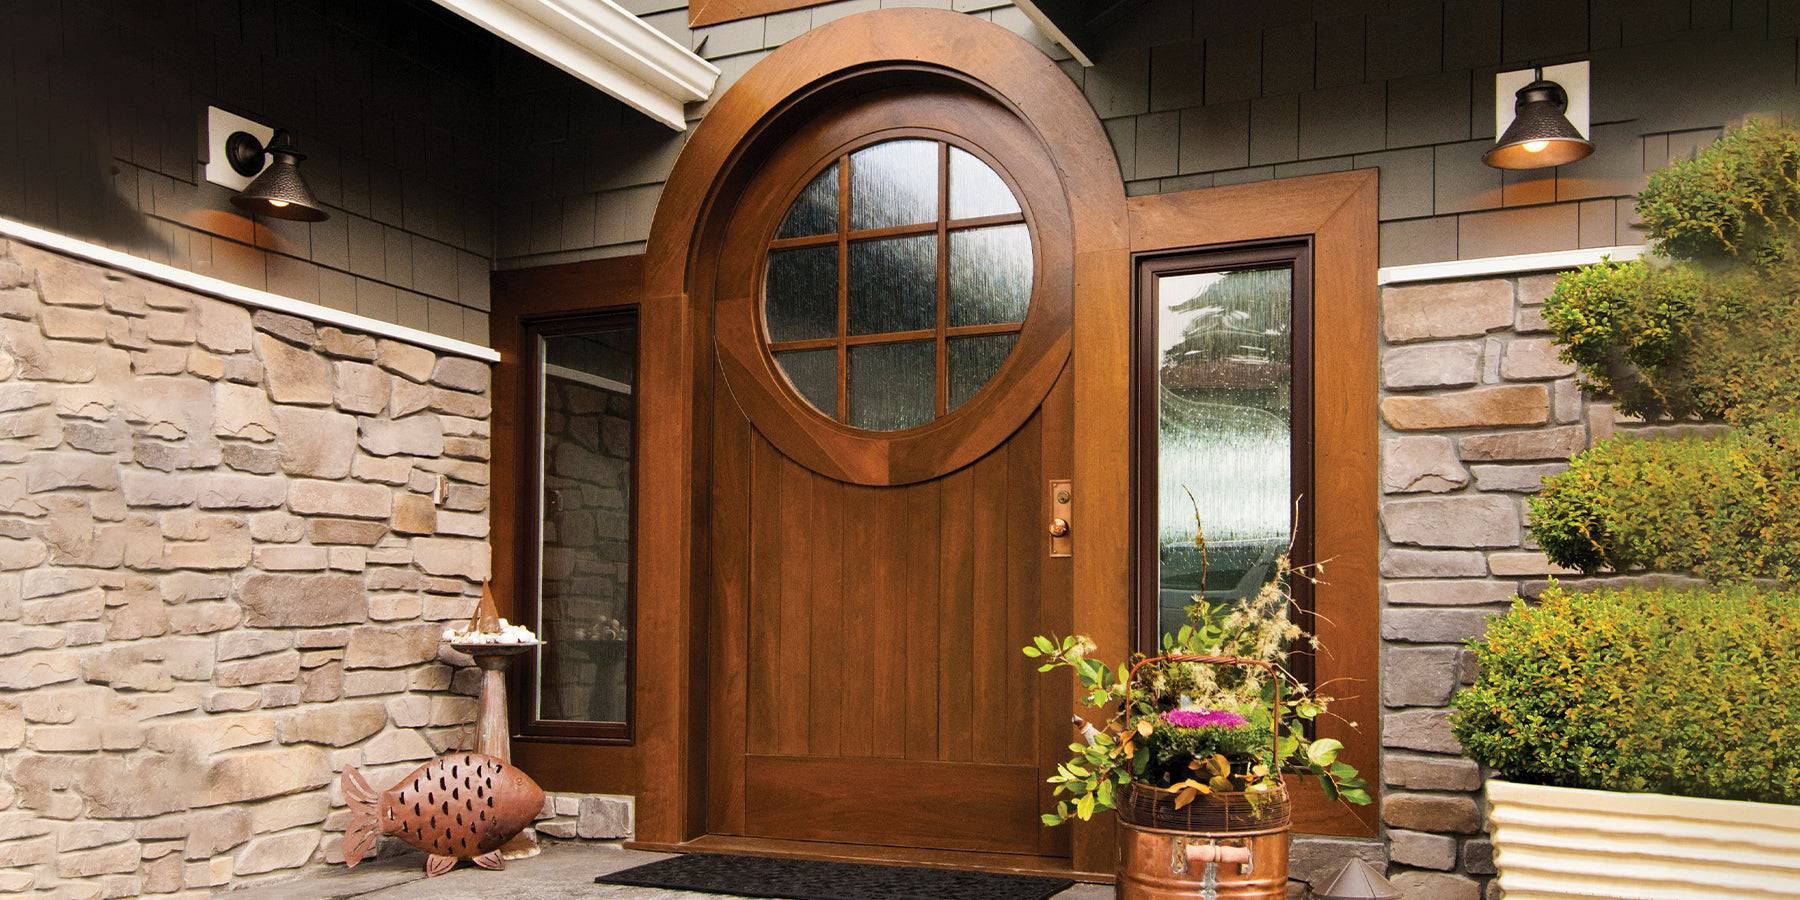 House entryway featuring a luxurious solid wood custom door design with la large circular window on the top area.